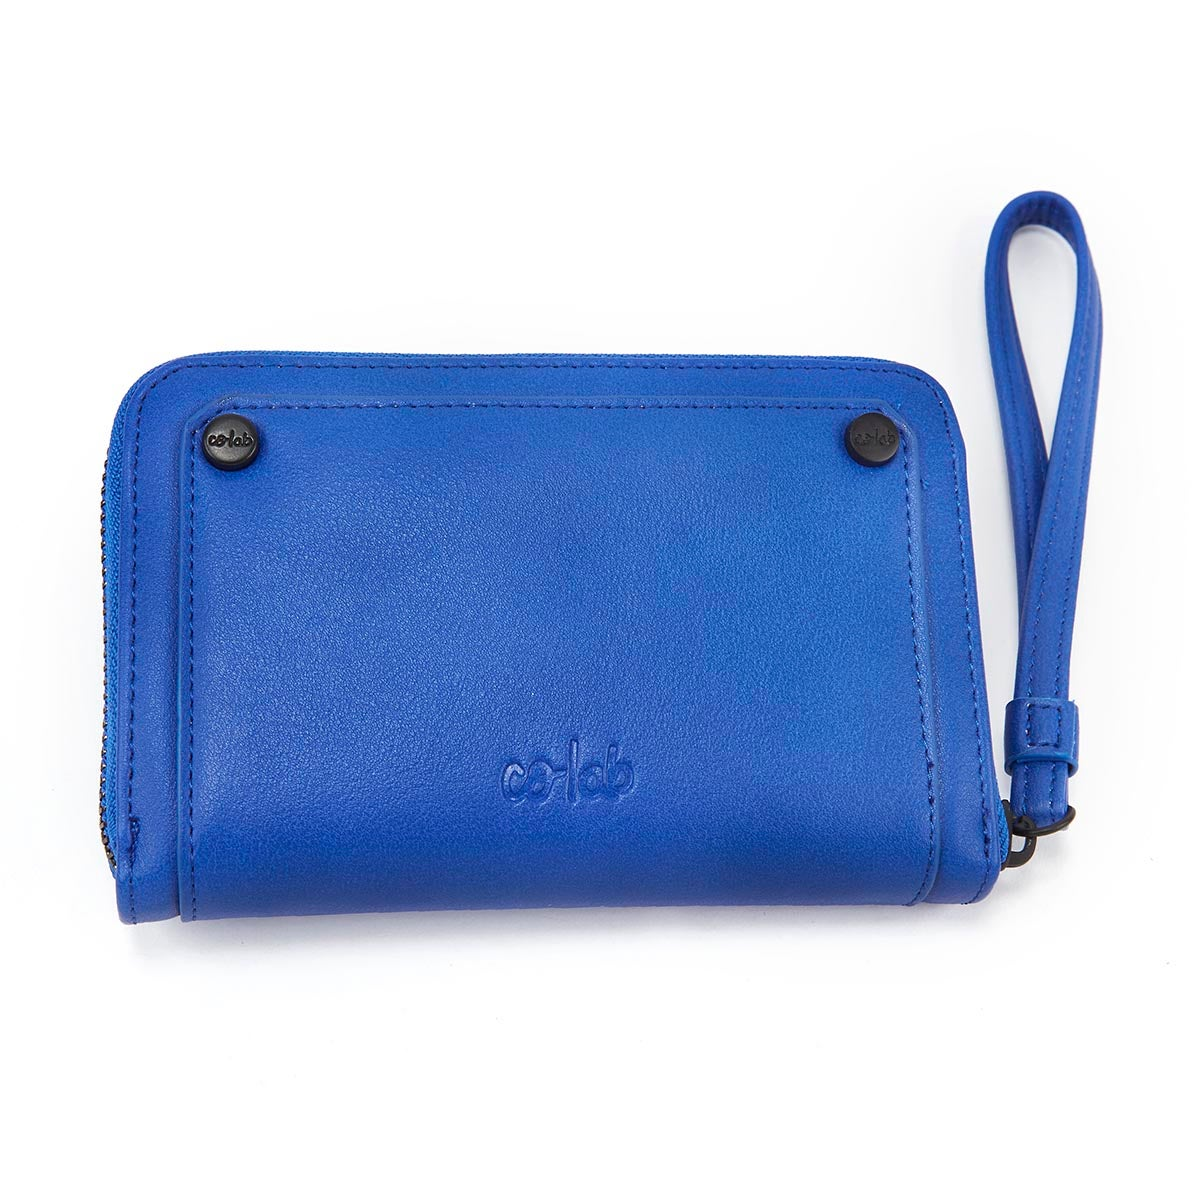 Lds cobalt zip up mini wallet